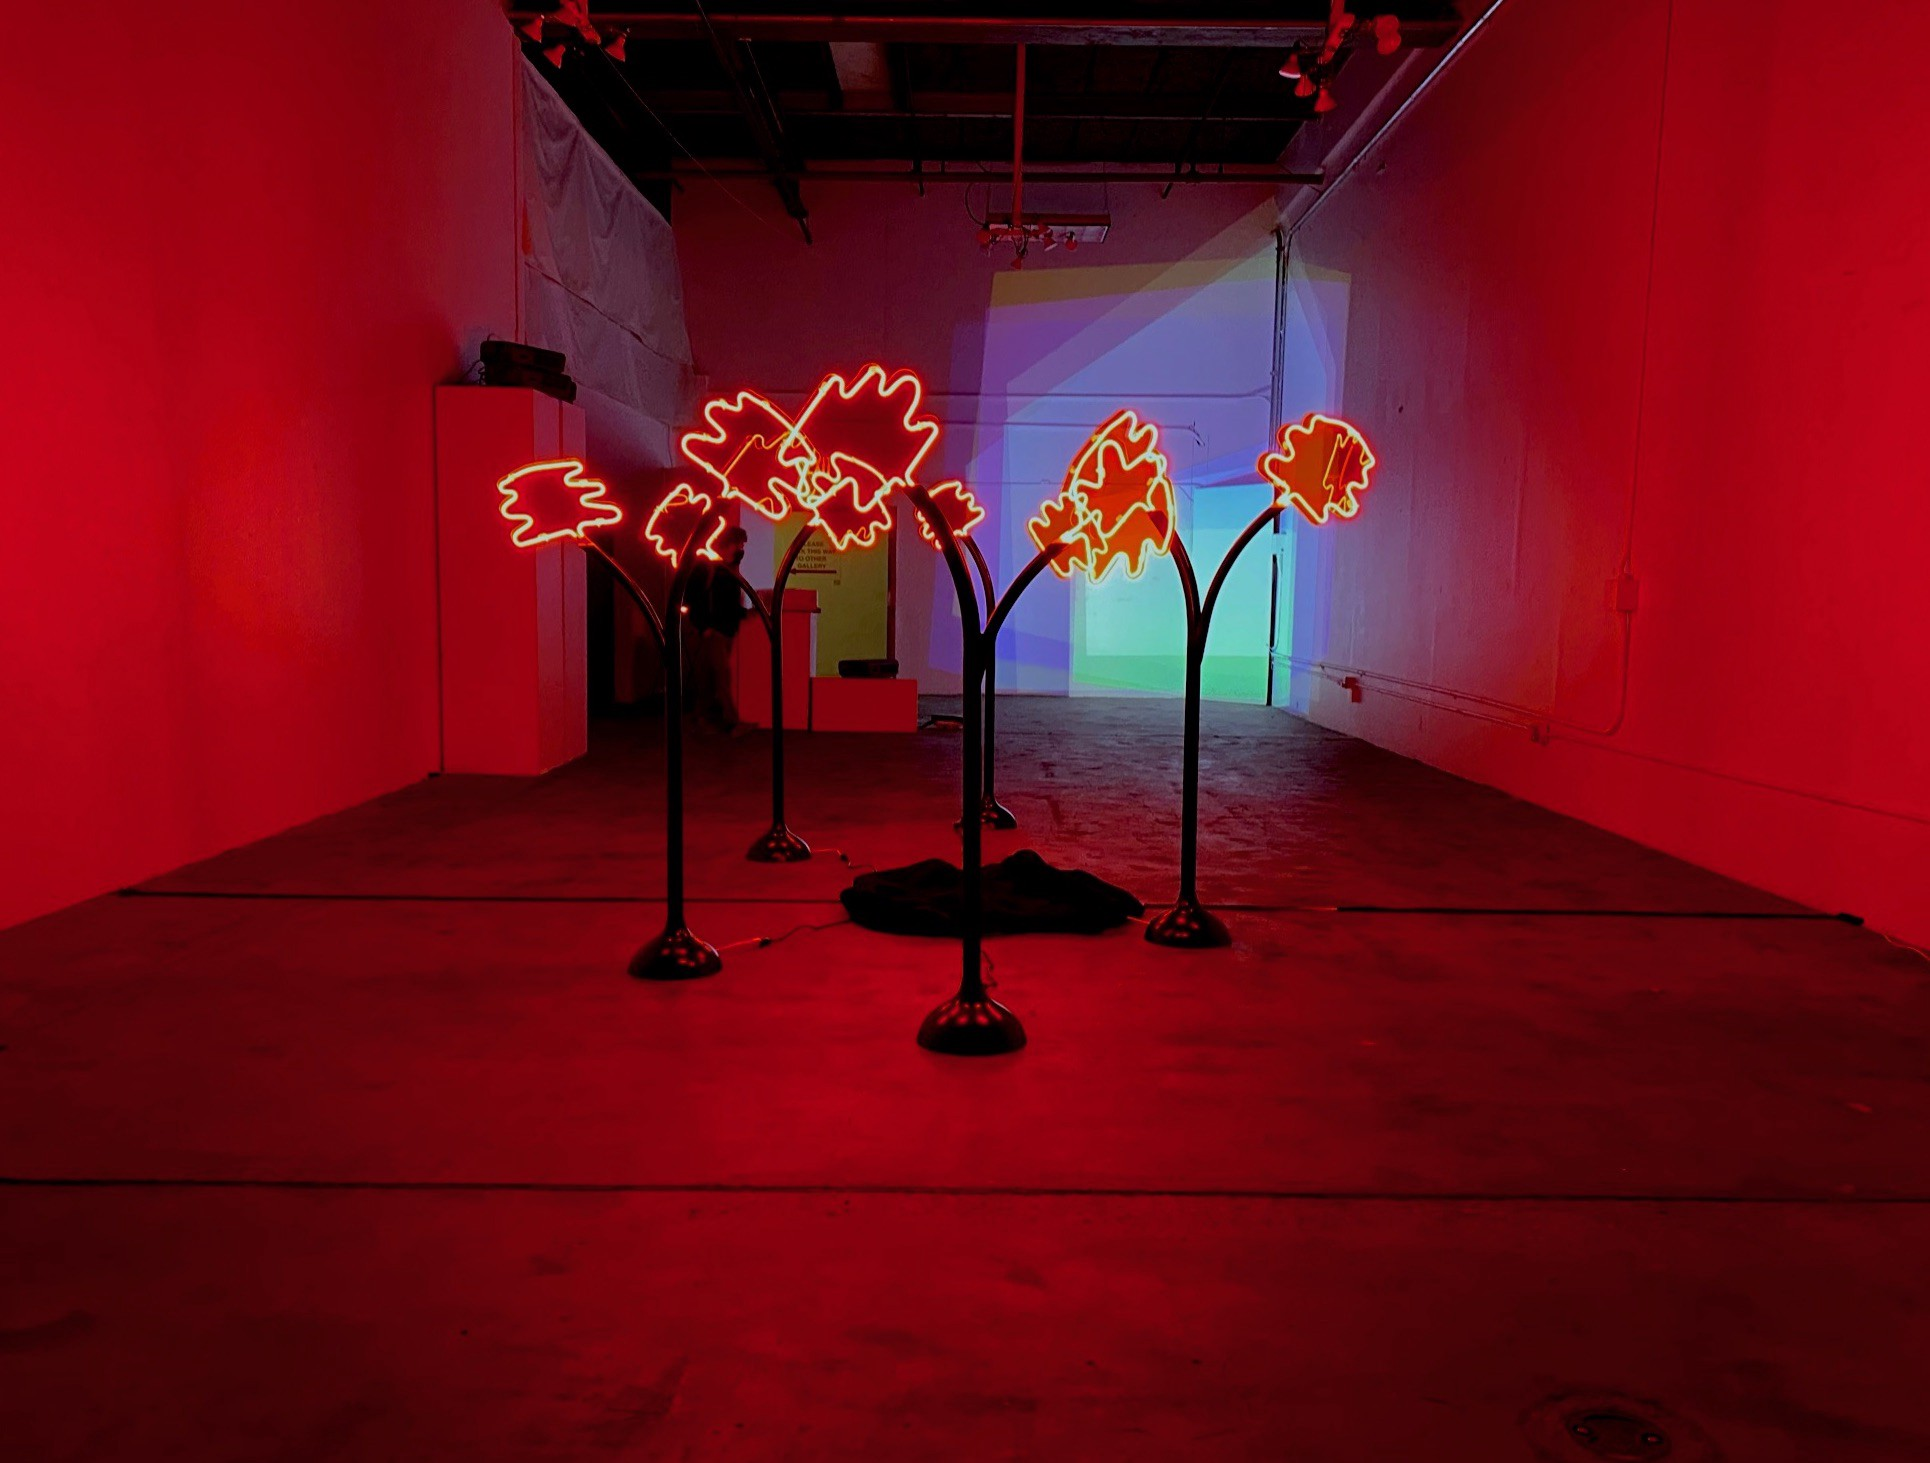 Red neon lights in the form of trees, part of the exhibition EDGE OF LIGHT. Inspired by recent forest fires & climate change.